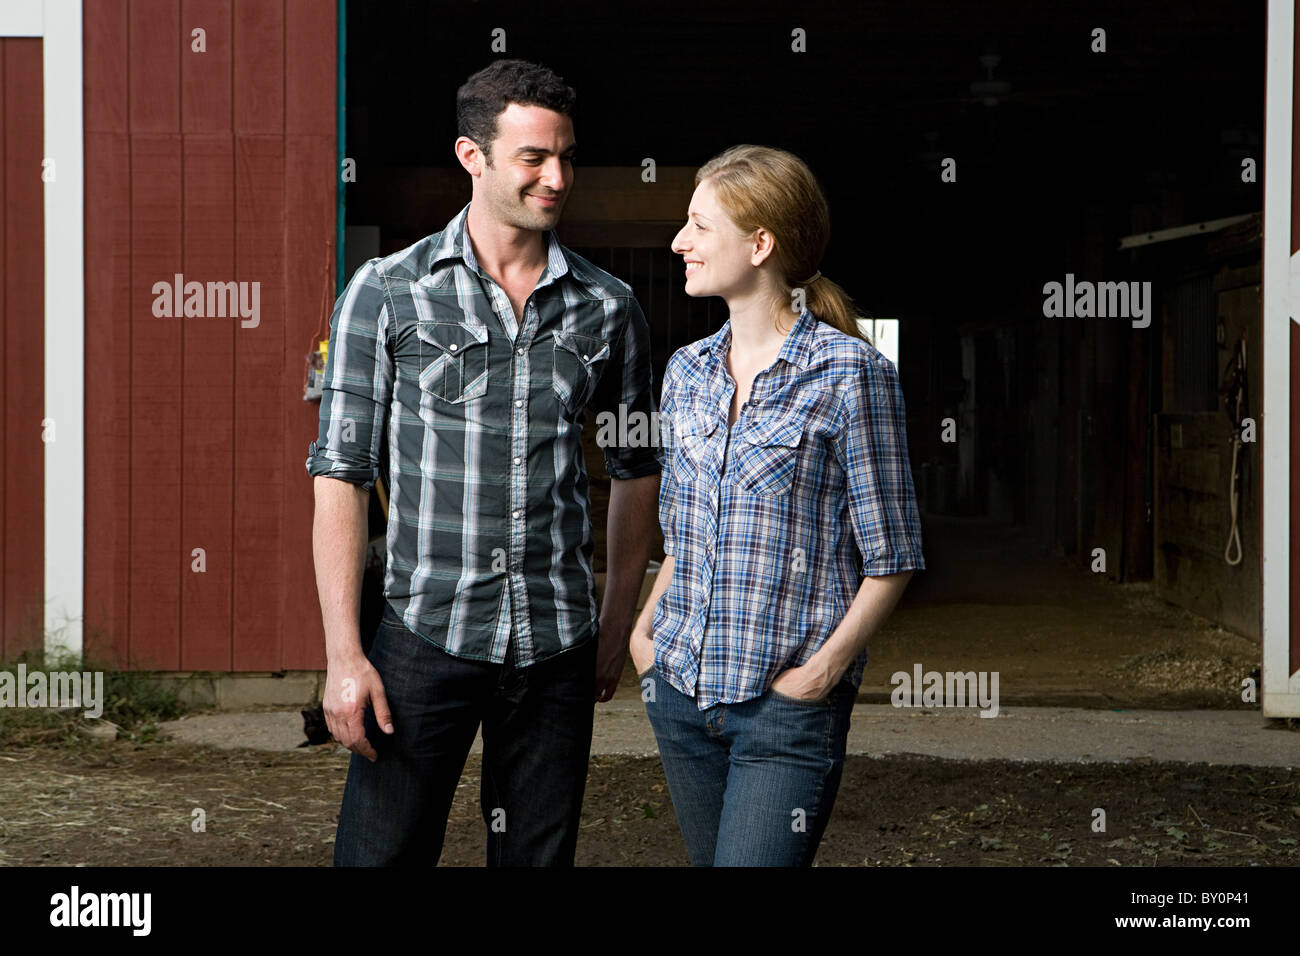 Couple at stable - Stock Image